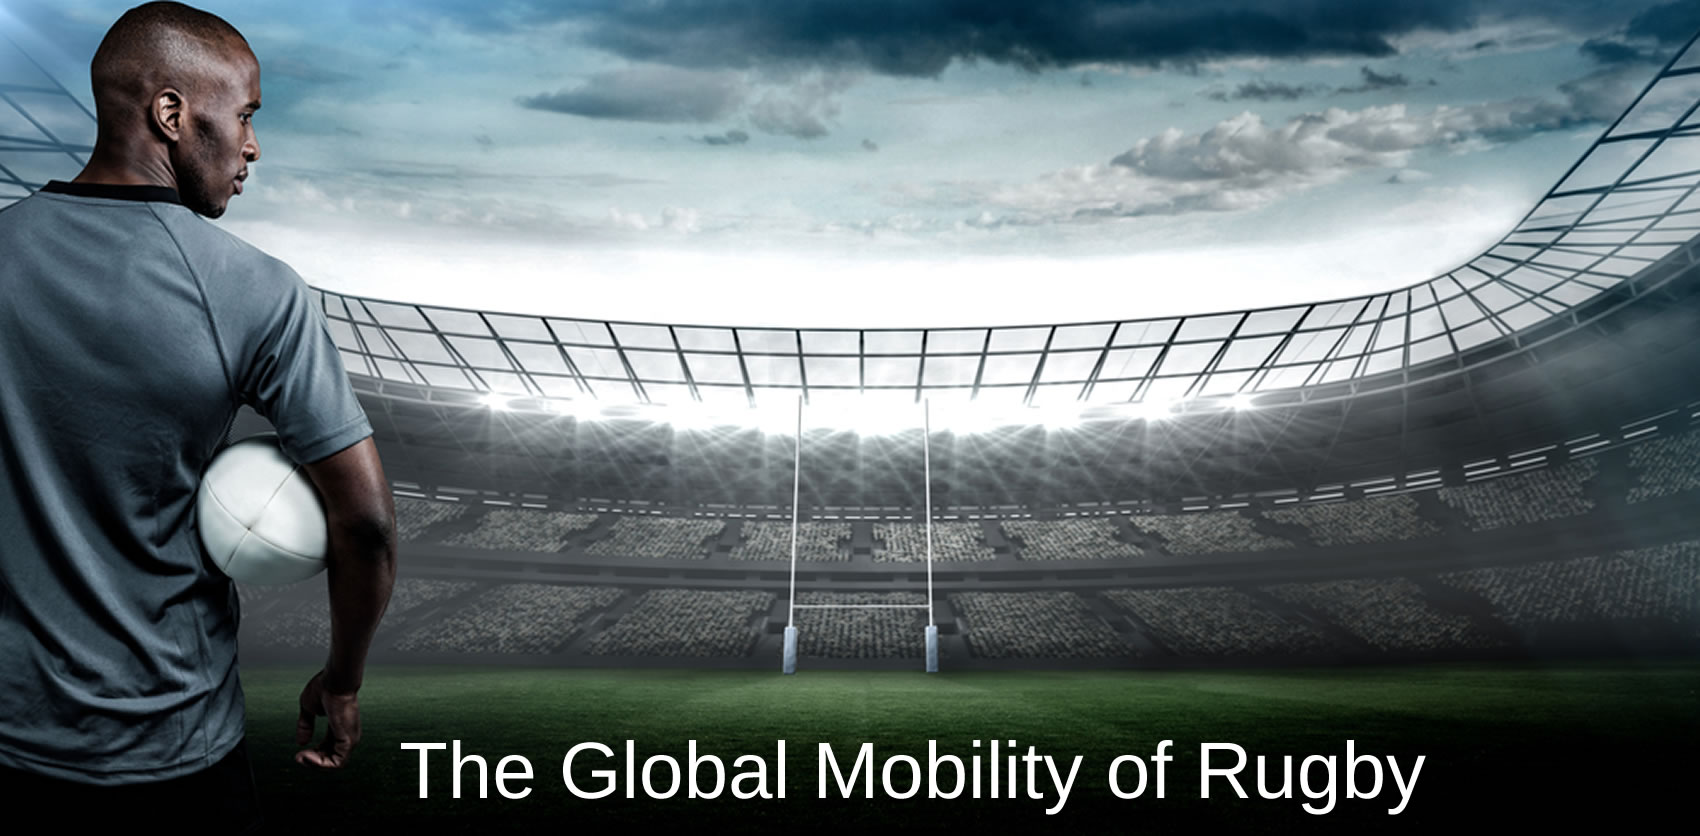 The global mobility effect of rugby - image source: Shutterstock, Inc. Credit/copyright: wavebreakmedia